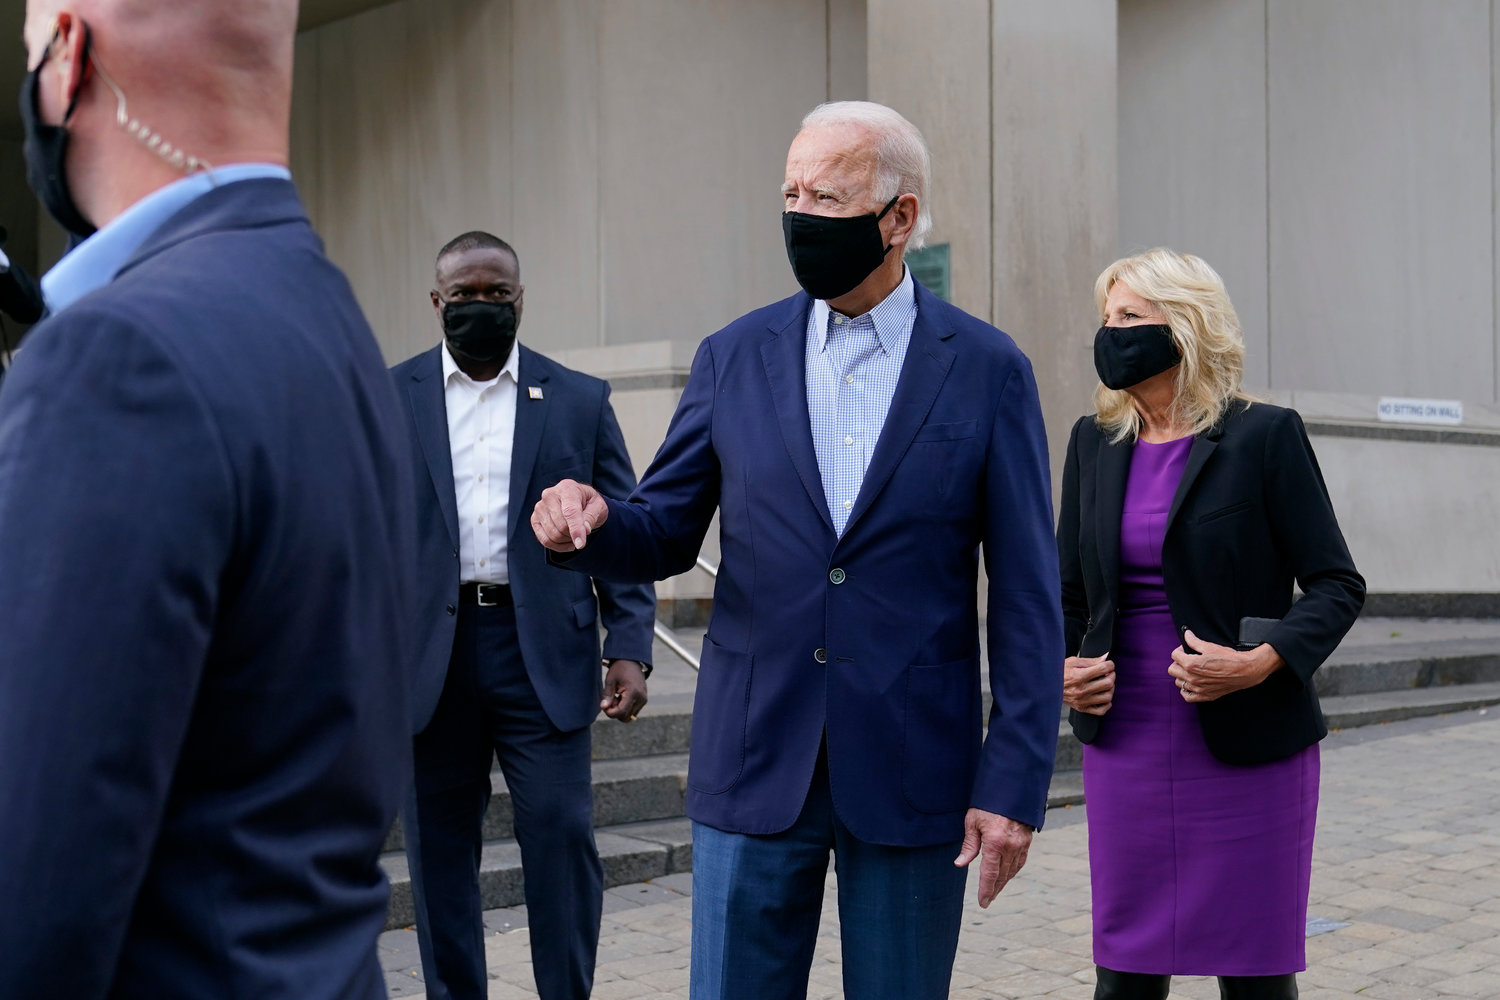 HEADING SOUTH — Democratic presidential candidate and former Vice President Joe Biden speaks with reporters as he and his wife Jill Biden depart after voting early in Delaware's state primary election at the New Castle County Board of Elections office in Wilmington, Del., Monday.